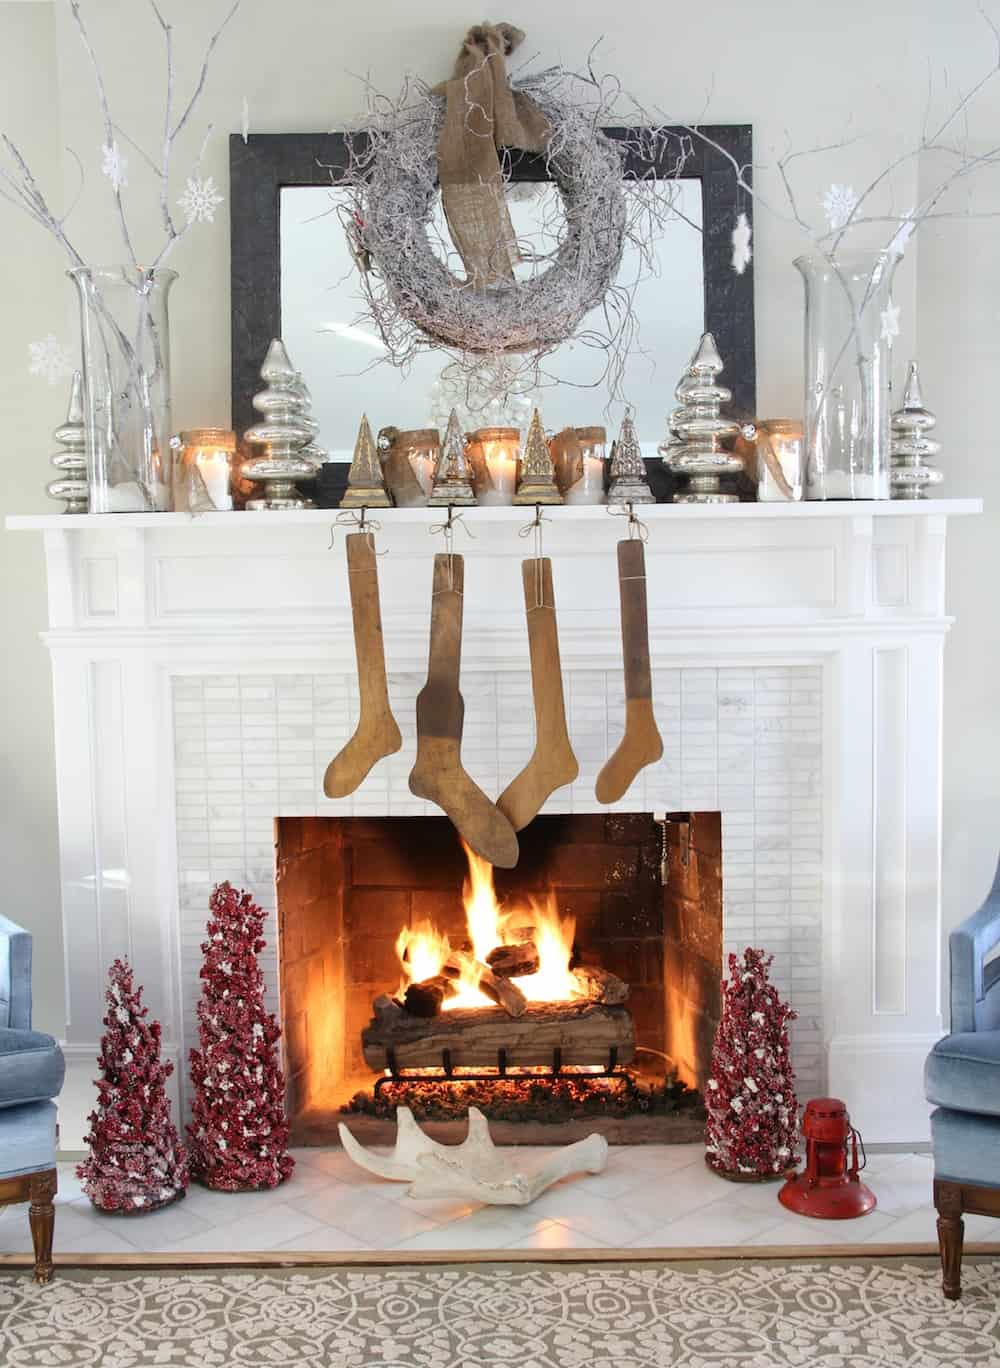 Lovely Pakistan Your Fireplace Glass Decoration Pieces Glass Decoration Pieces Pieces Country Ideas home decor Glass Decoration Pieces